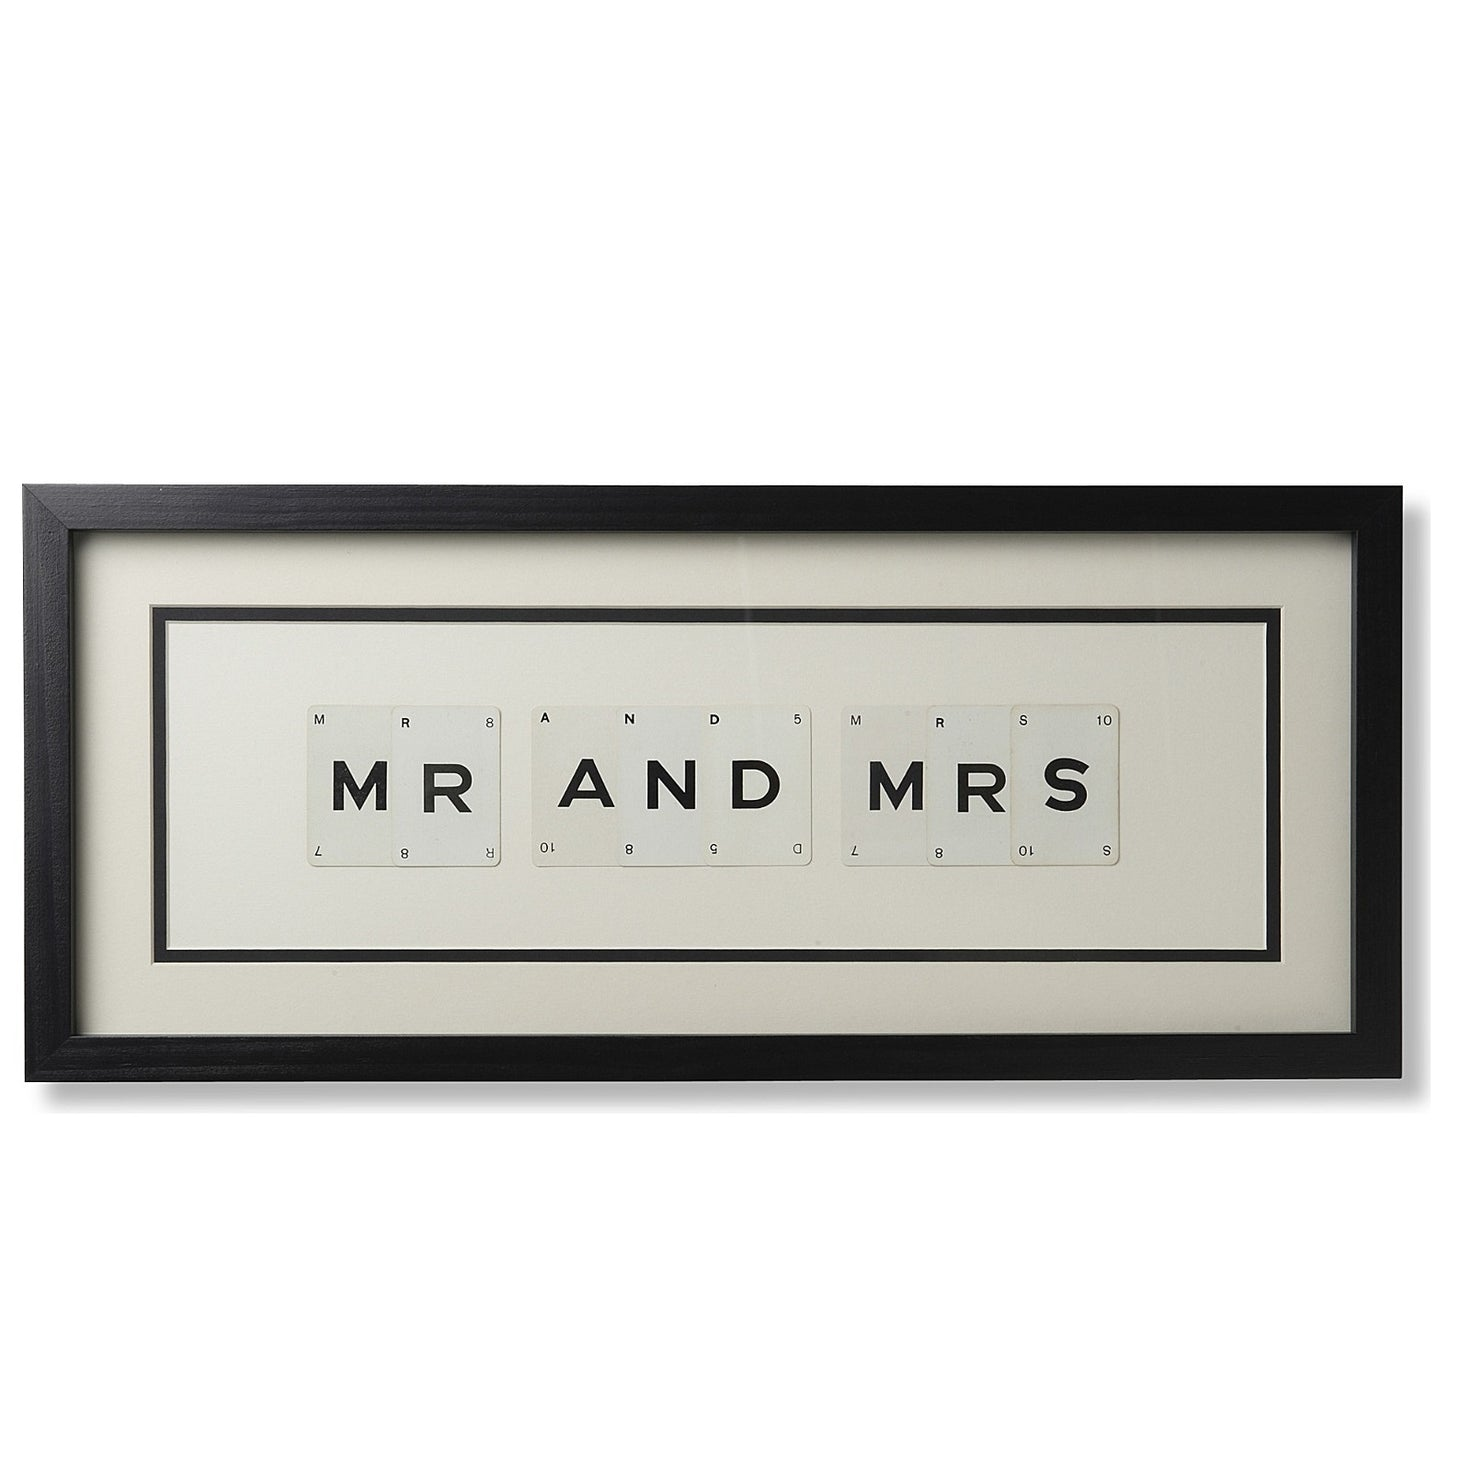 Medium MR & MRS Vintage Playing Card Frame